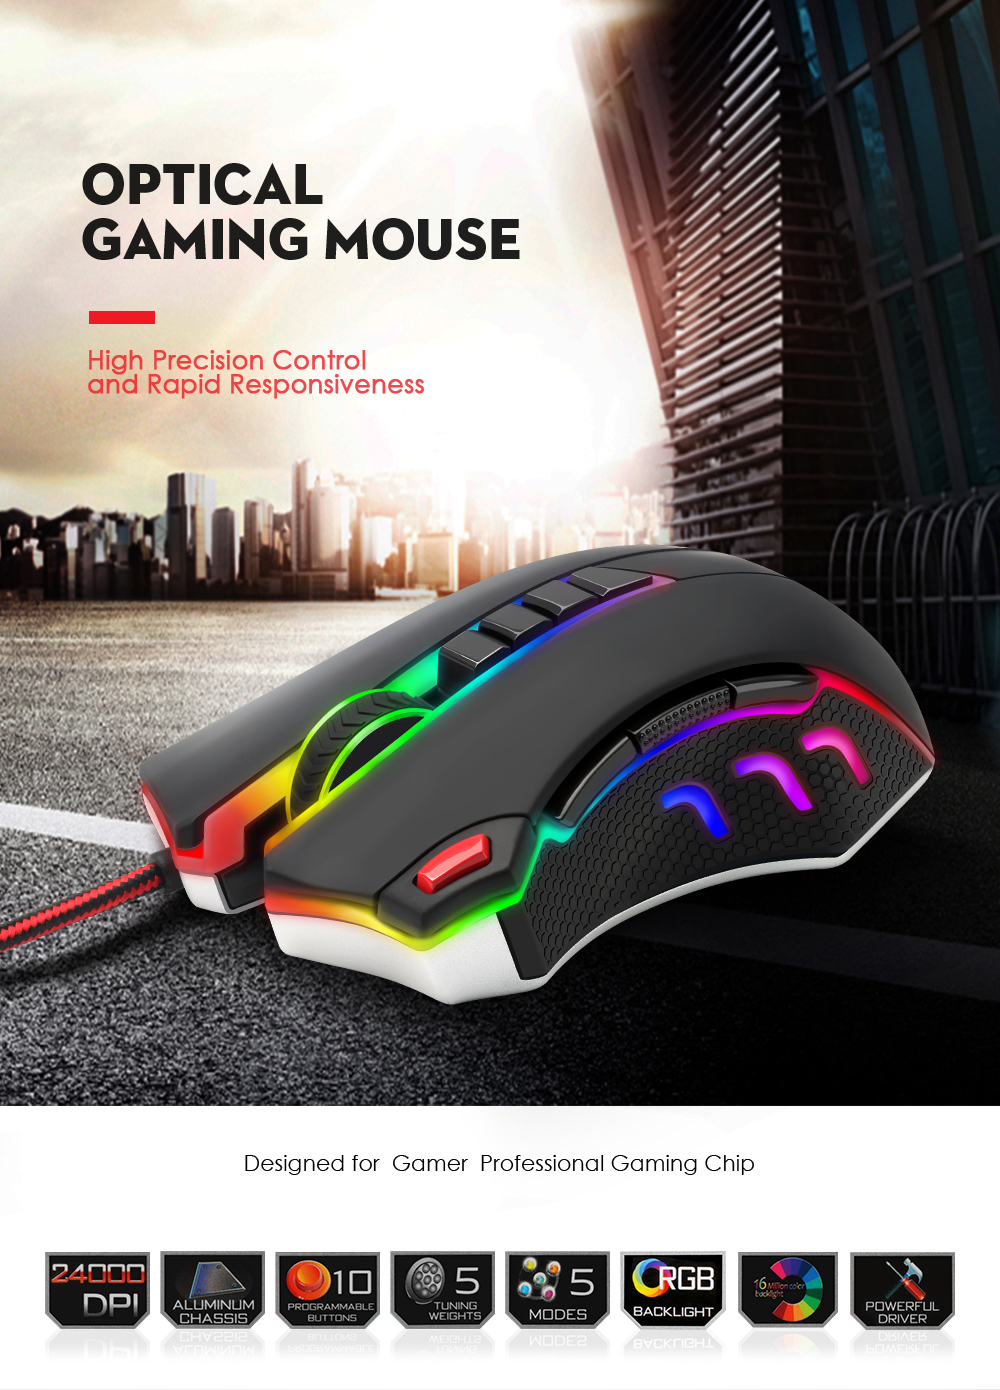 Redragon USB wired RGB Gaming Mouse 24000DPI 10 buttons laser programmable game mice LED backlight ergonomic for laptop computer 9